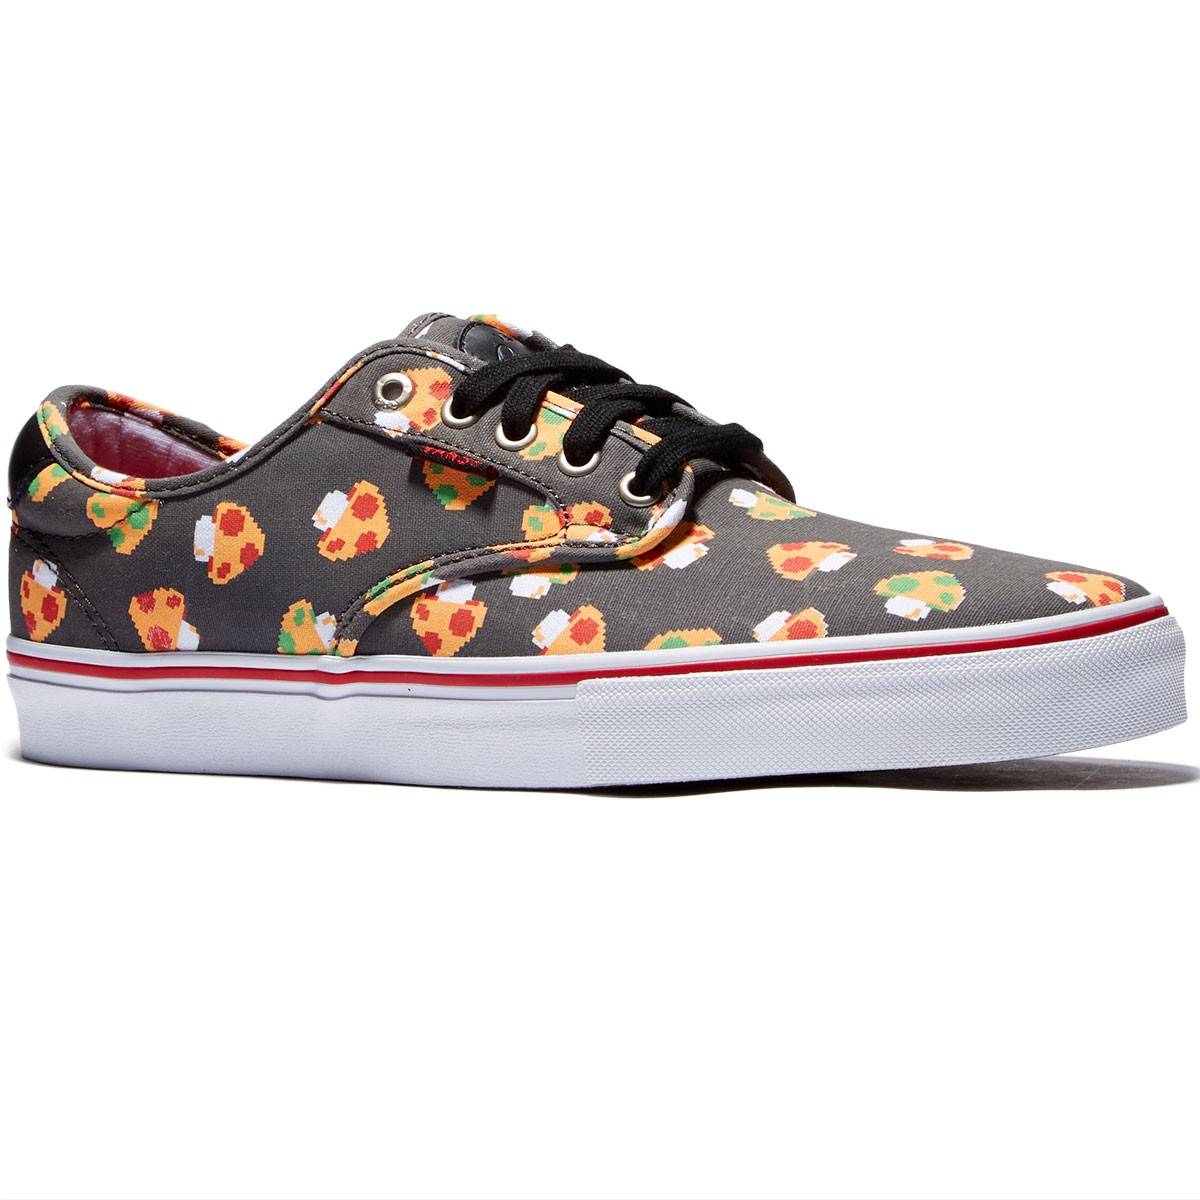 Vans Chima Ferguson Pro Shoes - Mushrooms Grey/White - 8.0